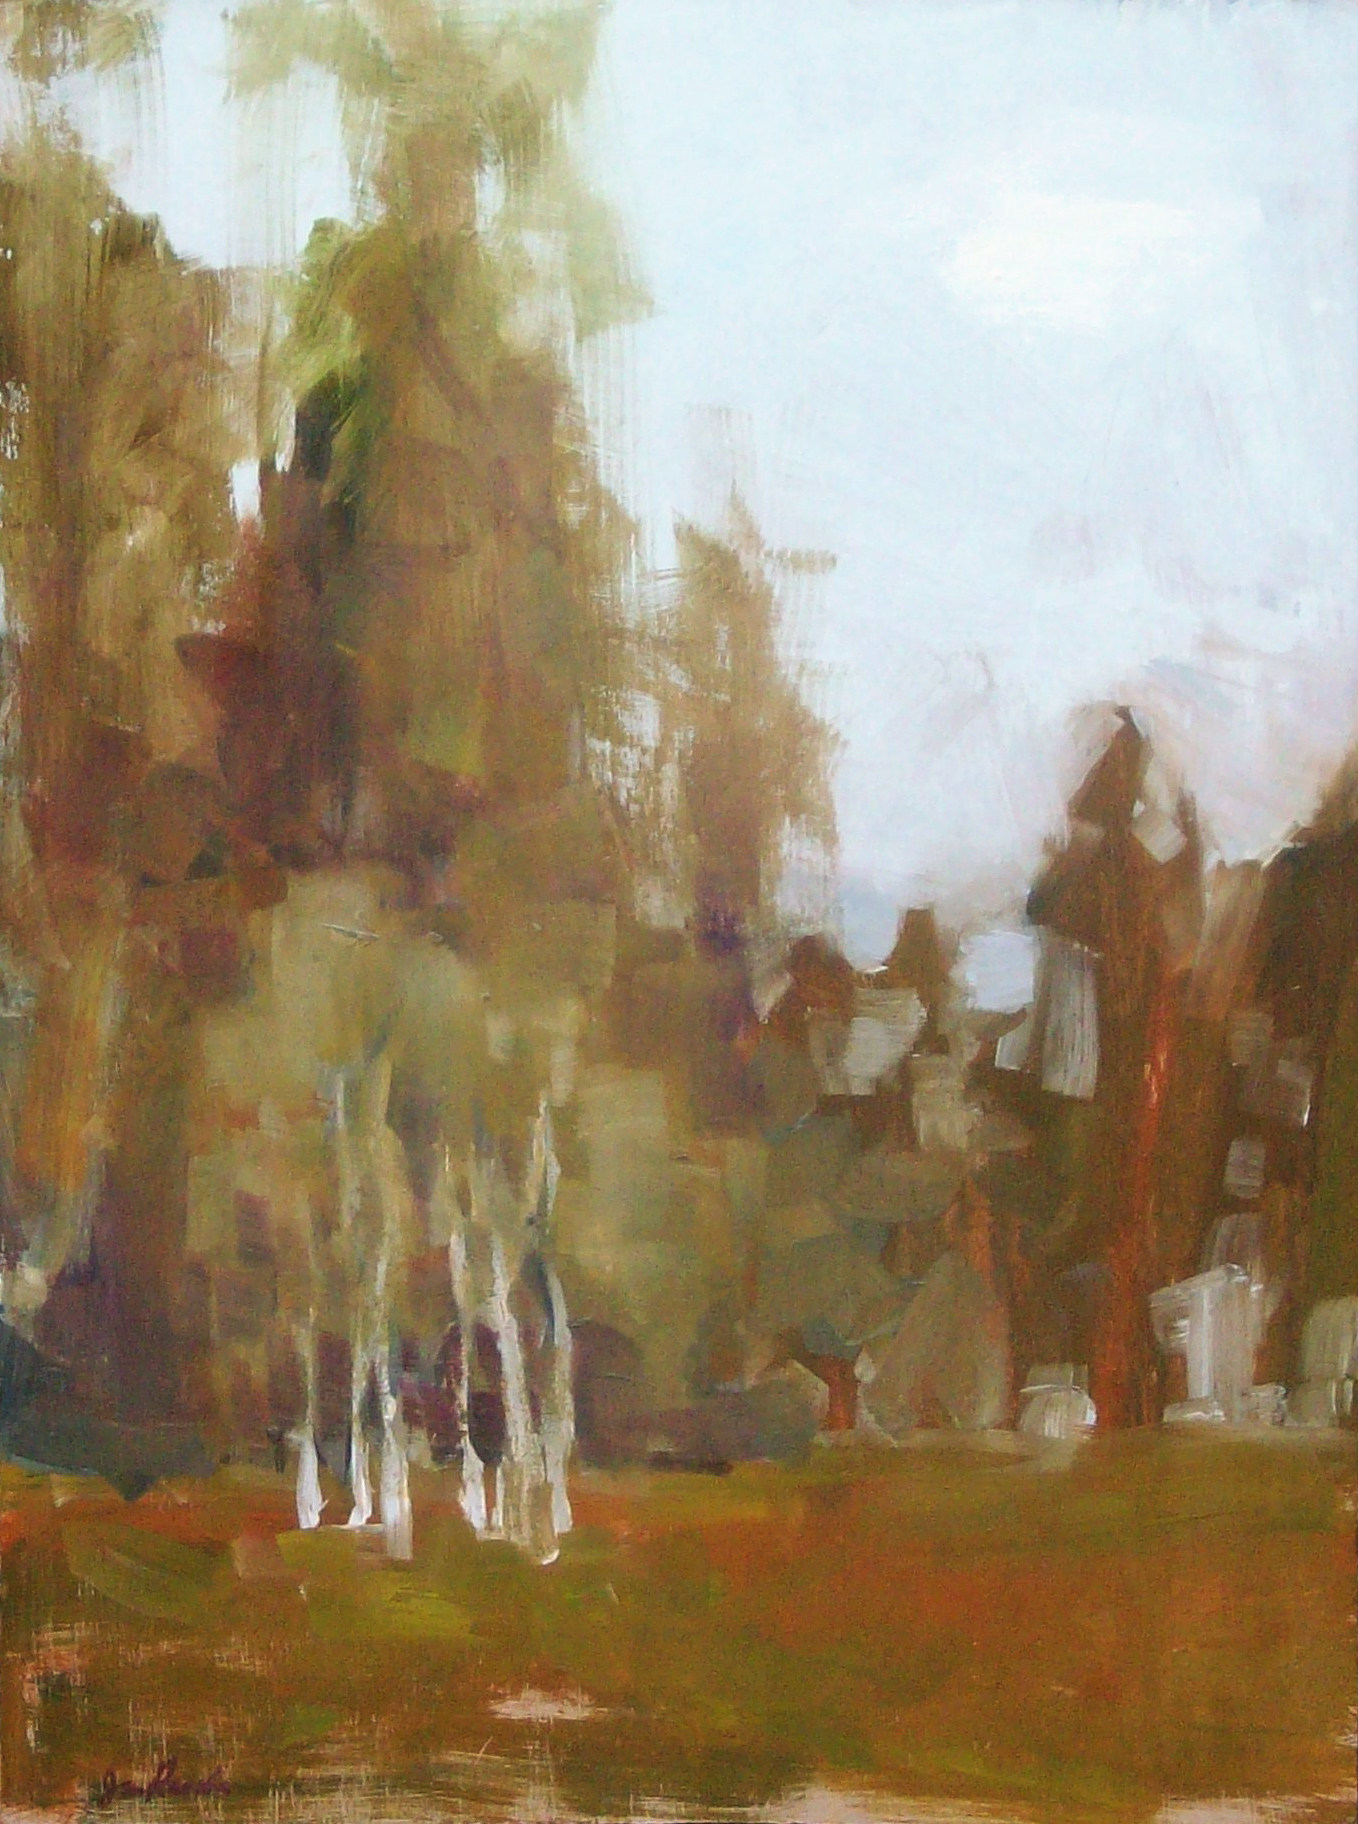 Neighbor's Trees II / approx 18x12 in / oil on wood / $900